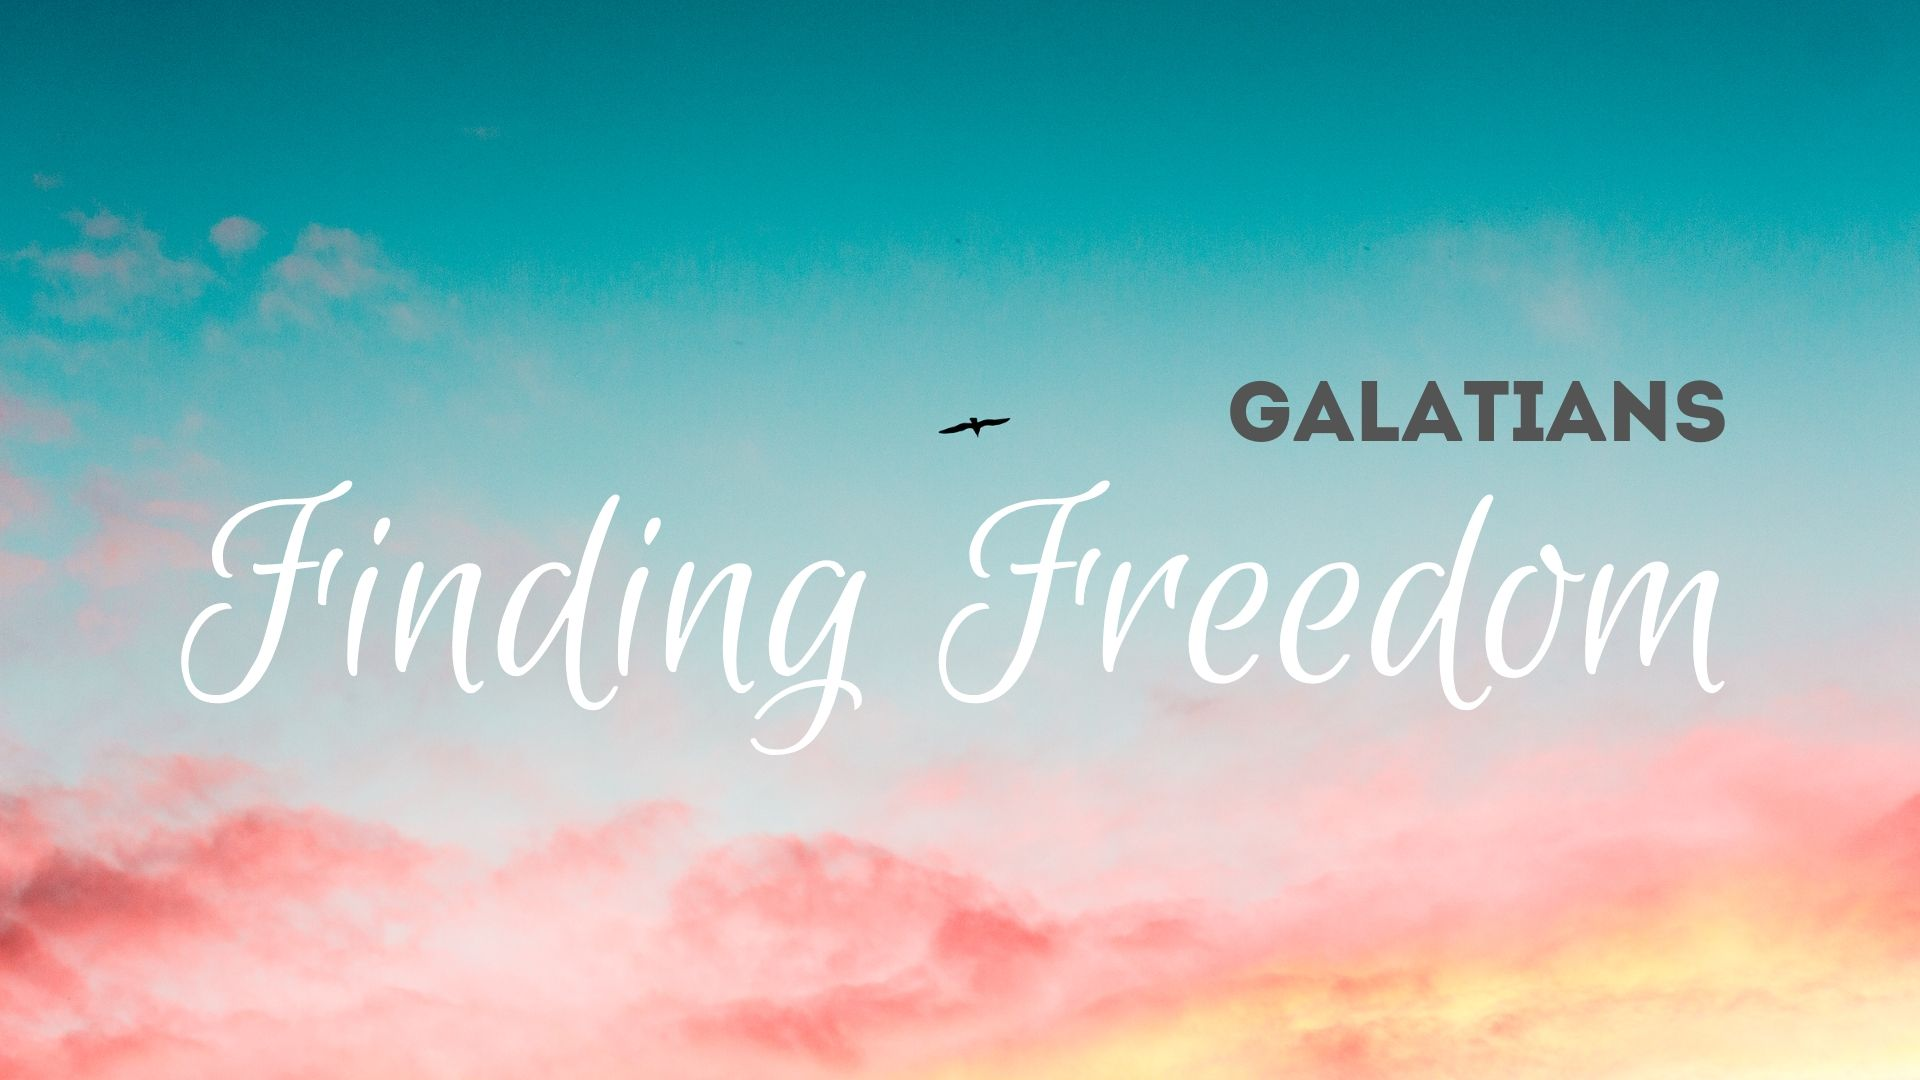 Galatians_ Finding Freedom Introduction Slide.jpg